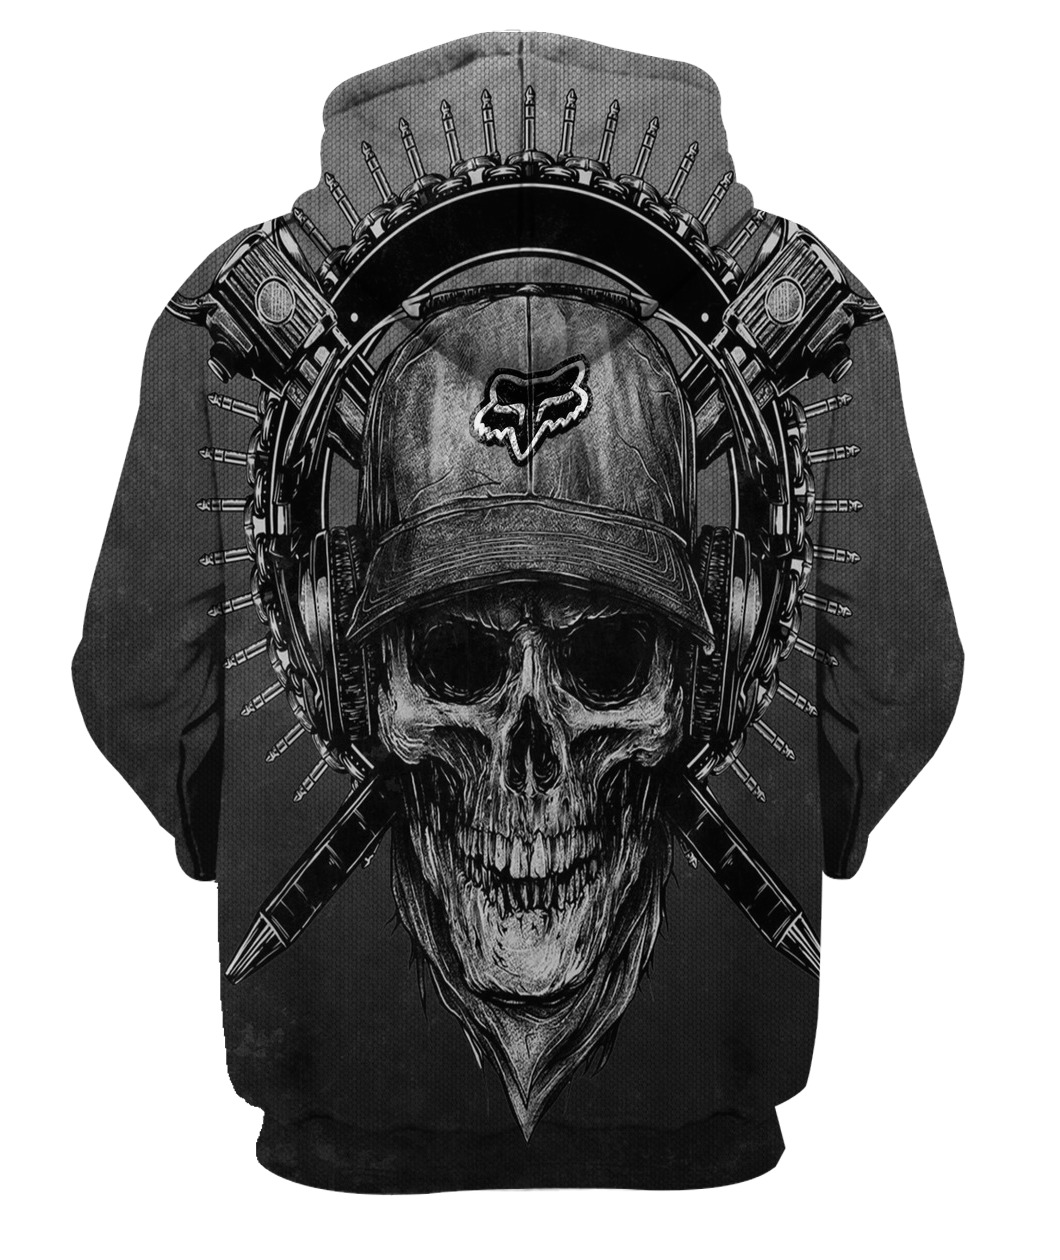 Terror noise division fox racing all over print hoodie - back